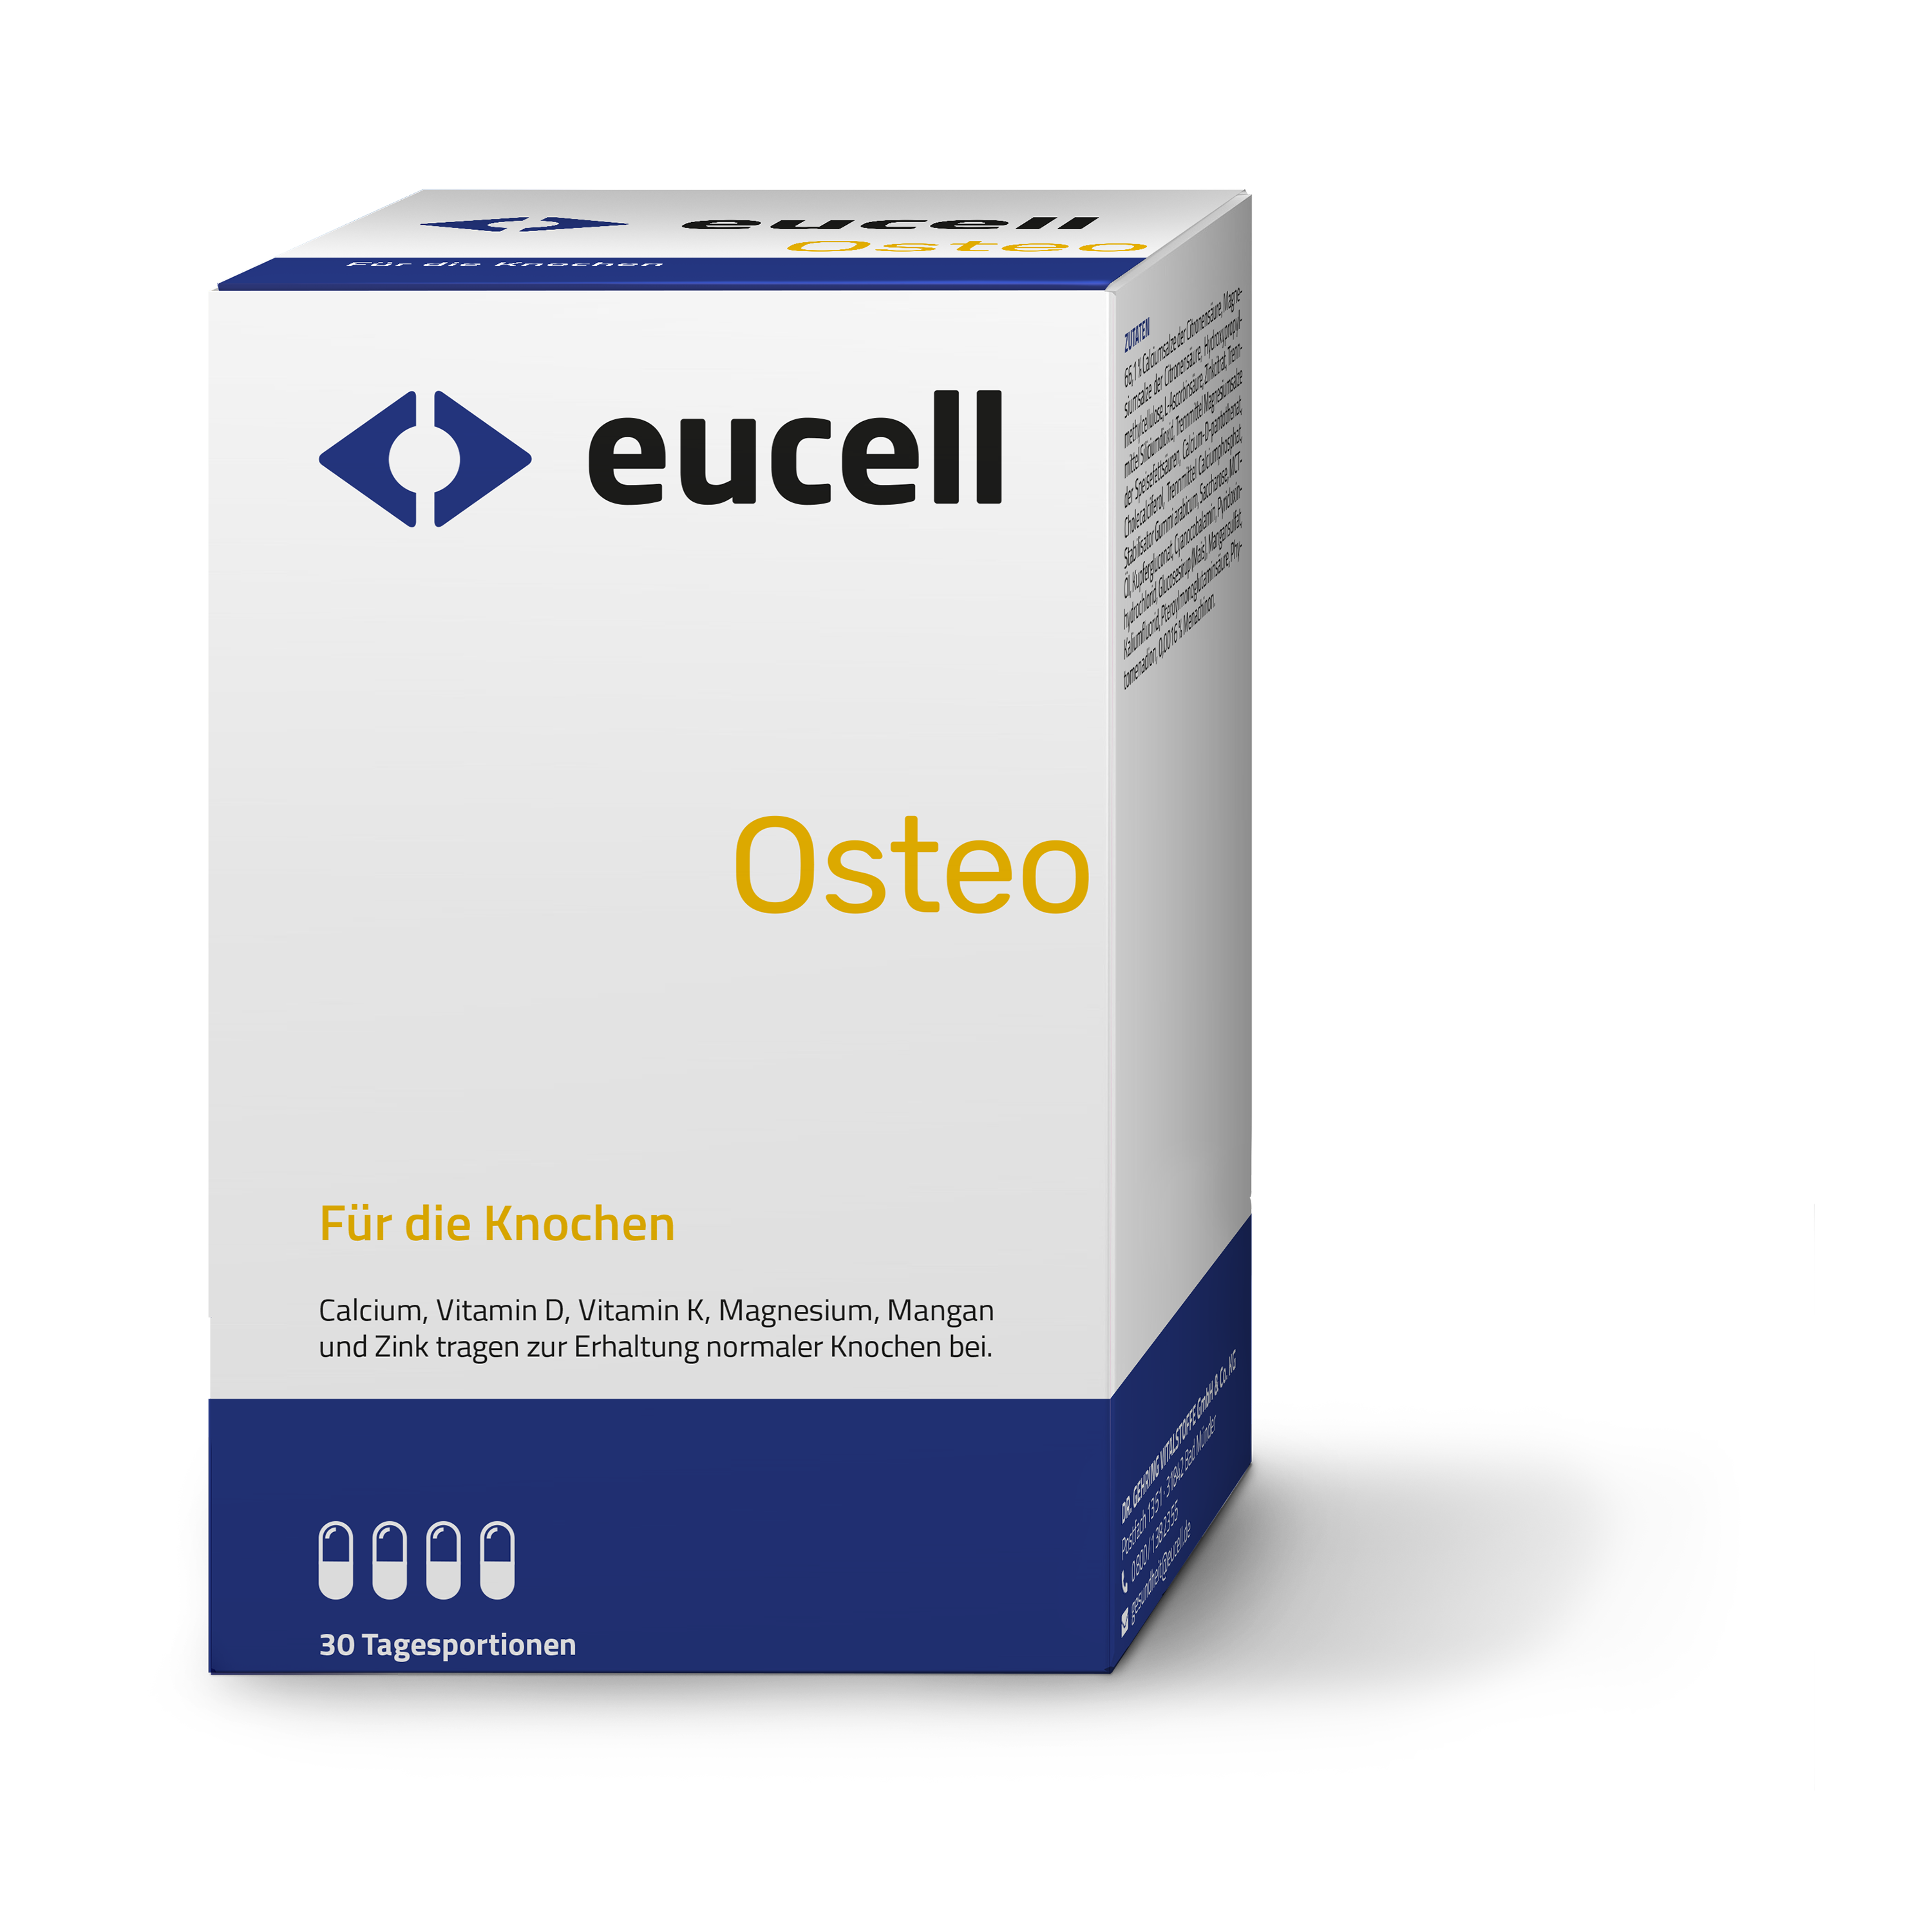 EUCELL Osteo